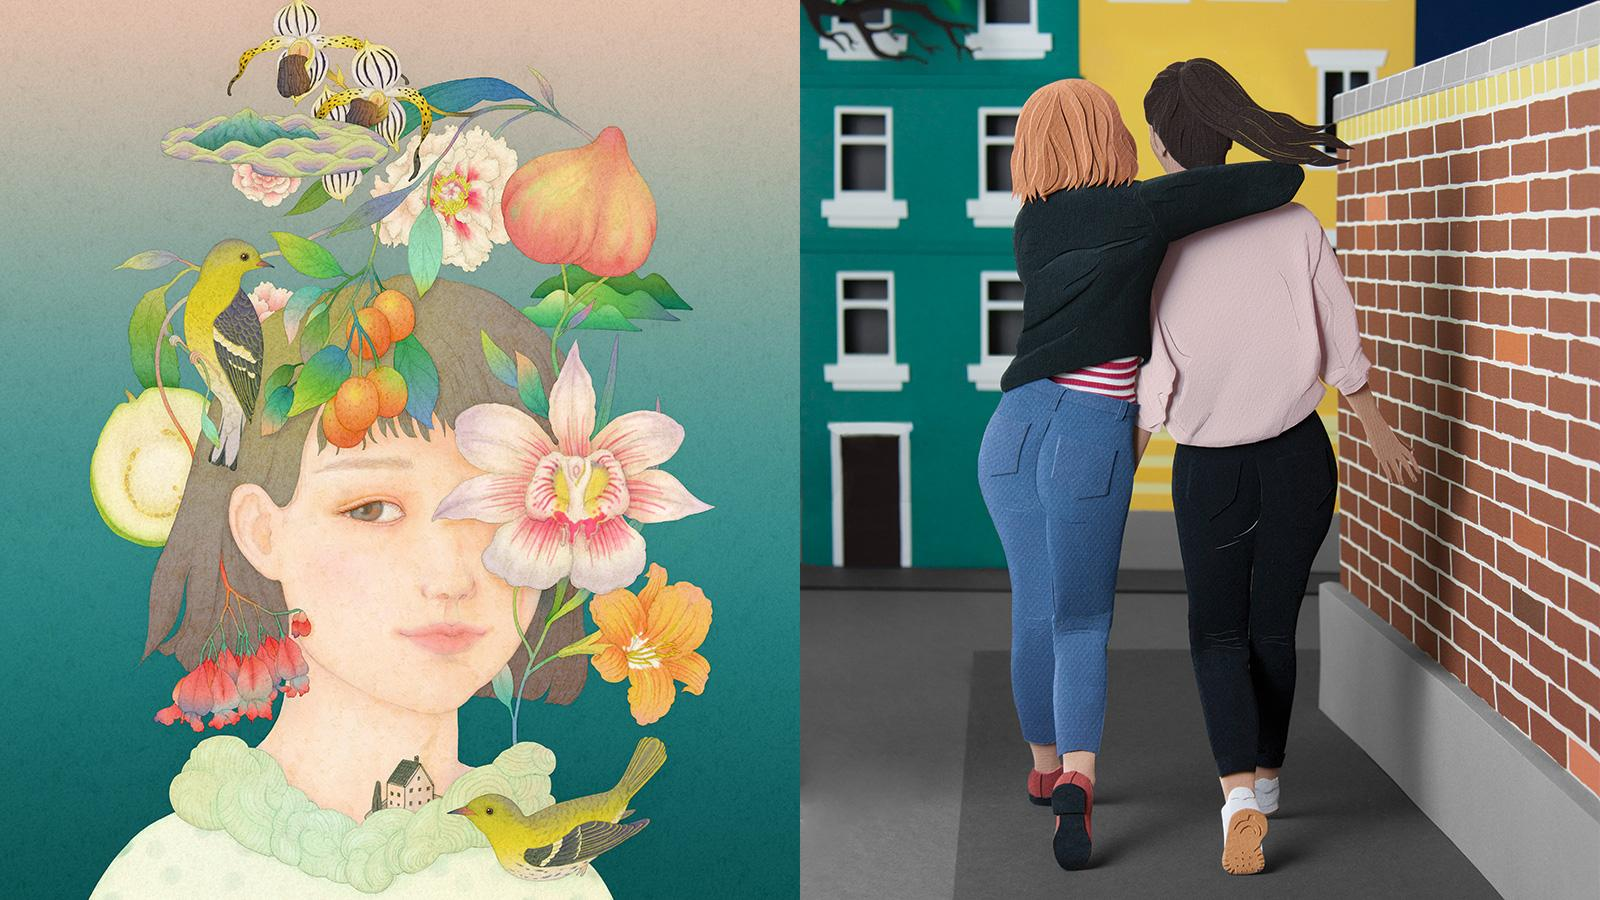 2019's best up-and-coming illustrators - Features - Digital Arts